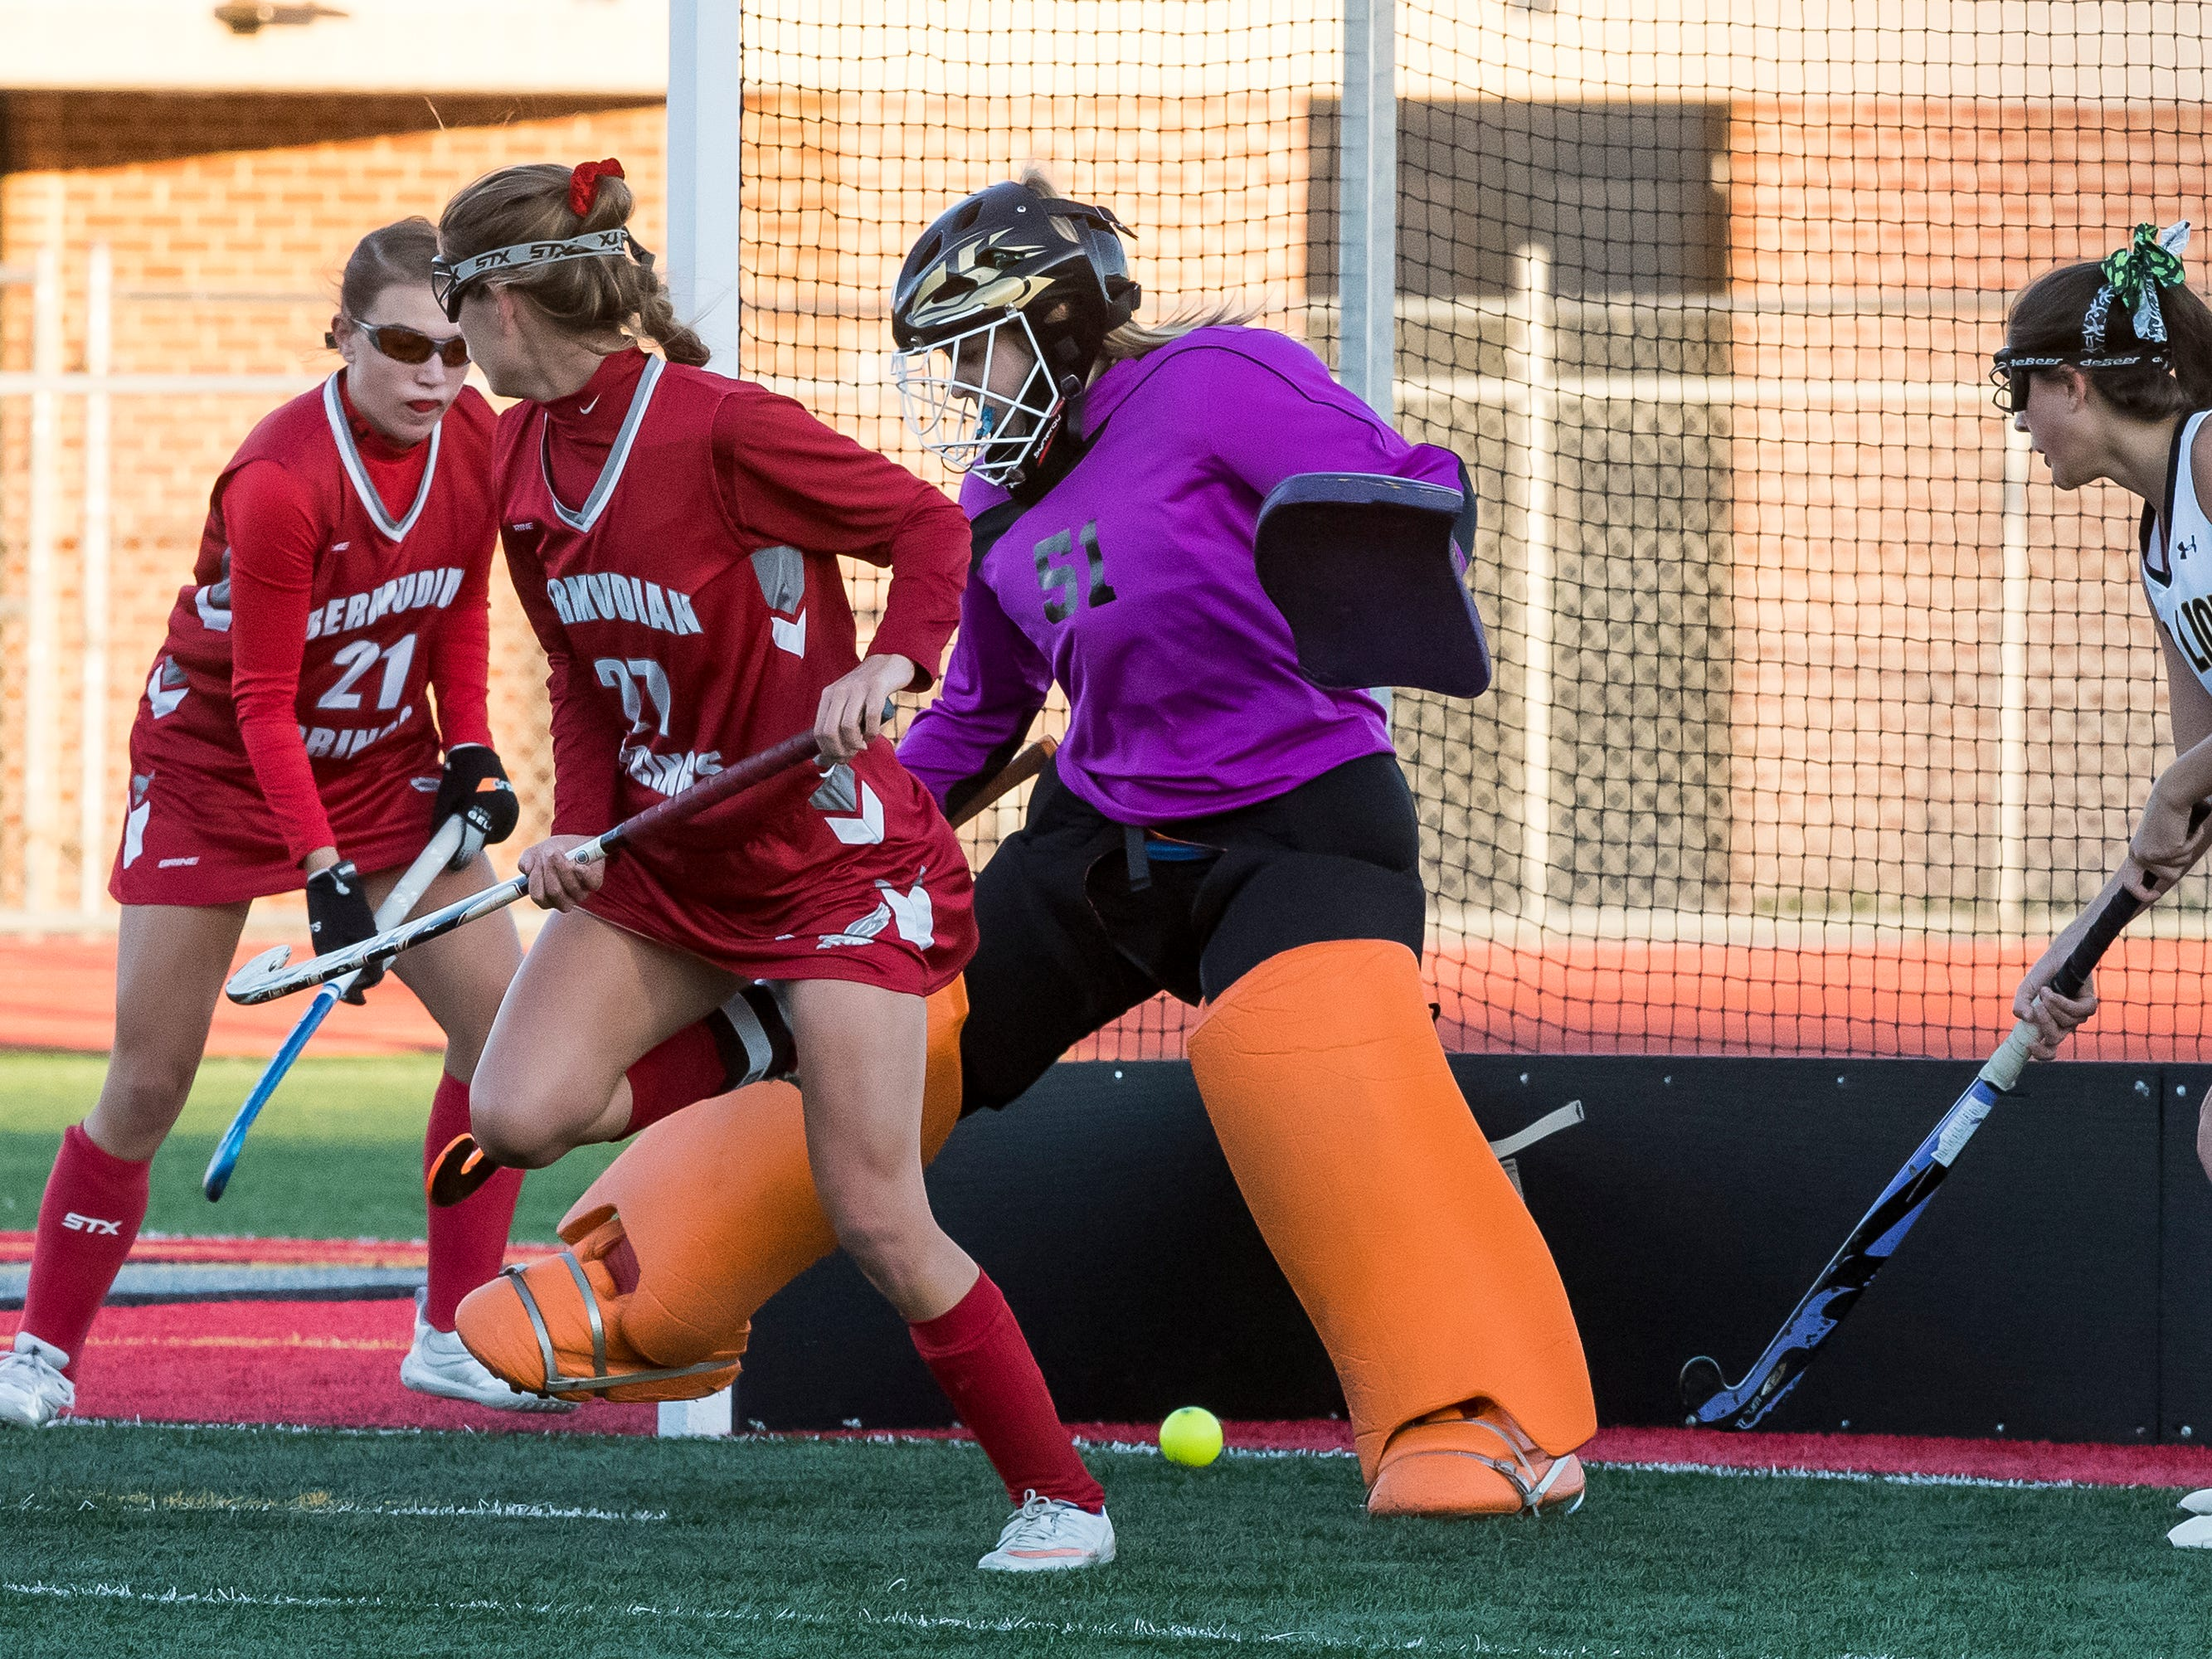 A shot from Bermudian Springs' Kaitlyn McCollum (27) goes between Red Lion's Allie Anderson for a goal during a YAIAA tournament semifinal game on Thursday, October 18, 2018. The Eagles won 2-0.